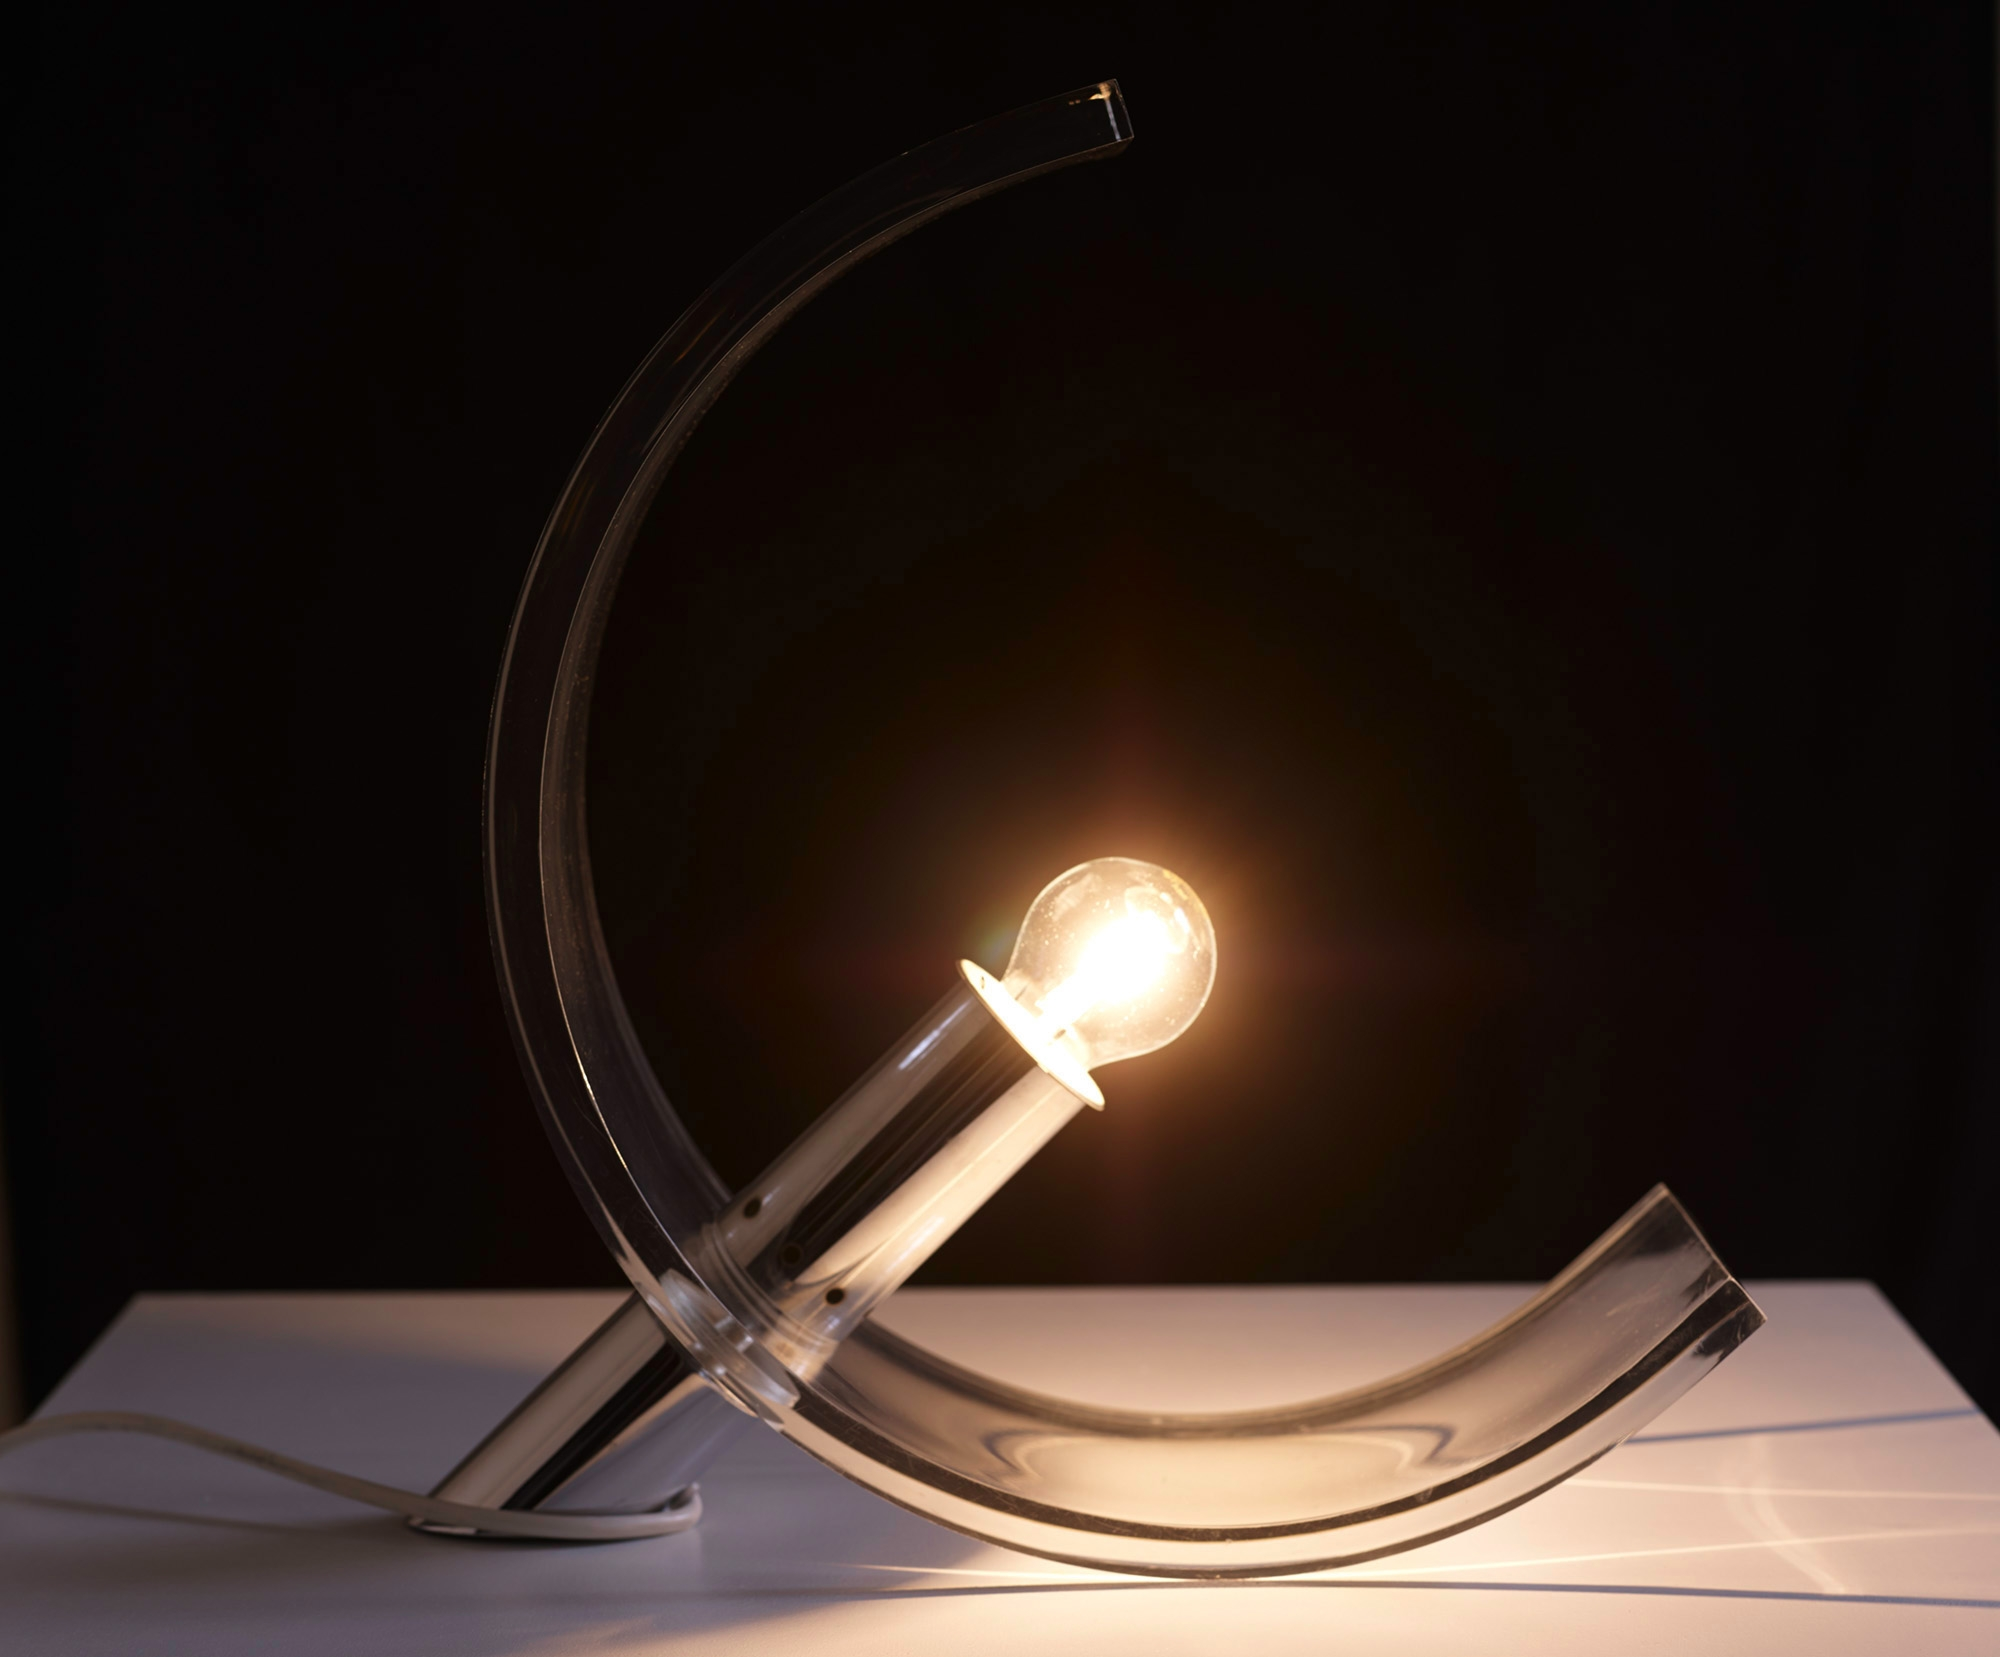 plexiglas-table-lamp-by-atelier-a-image-07